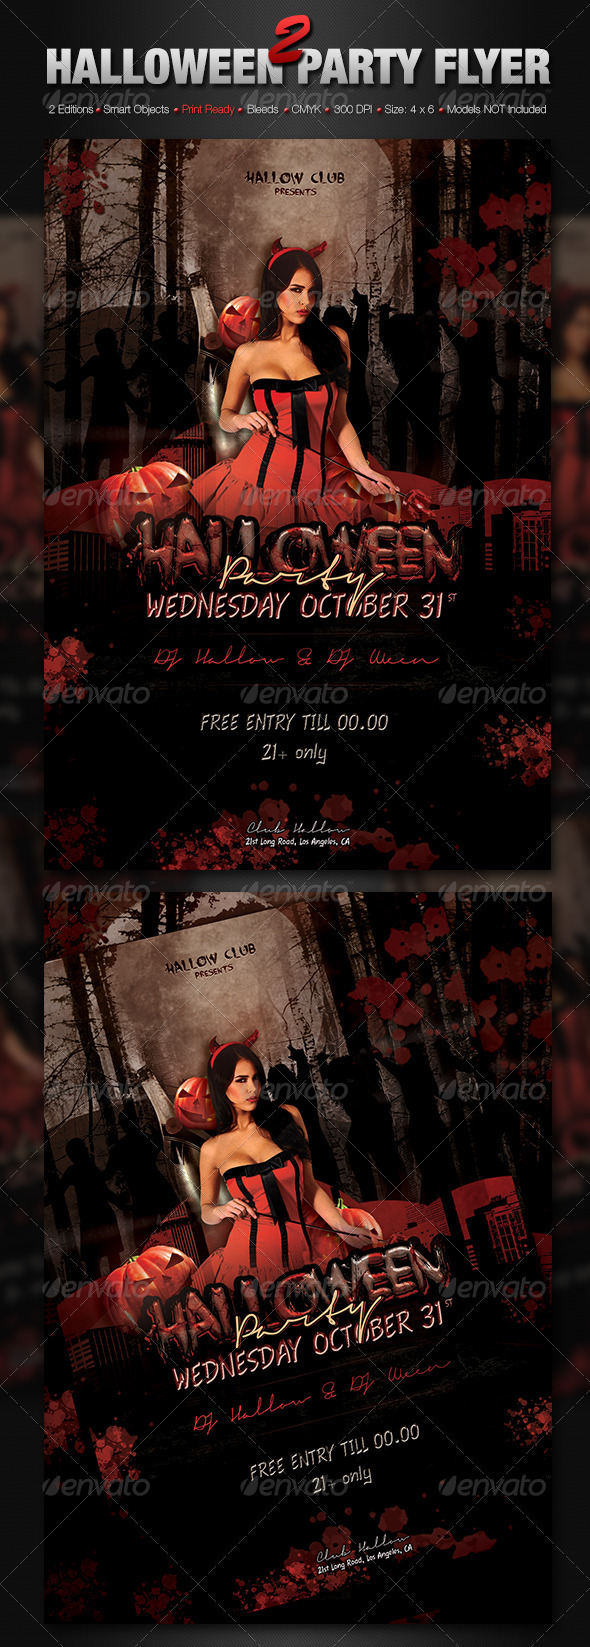 2 Halloween Party Flyers - Holidays Events